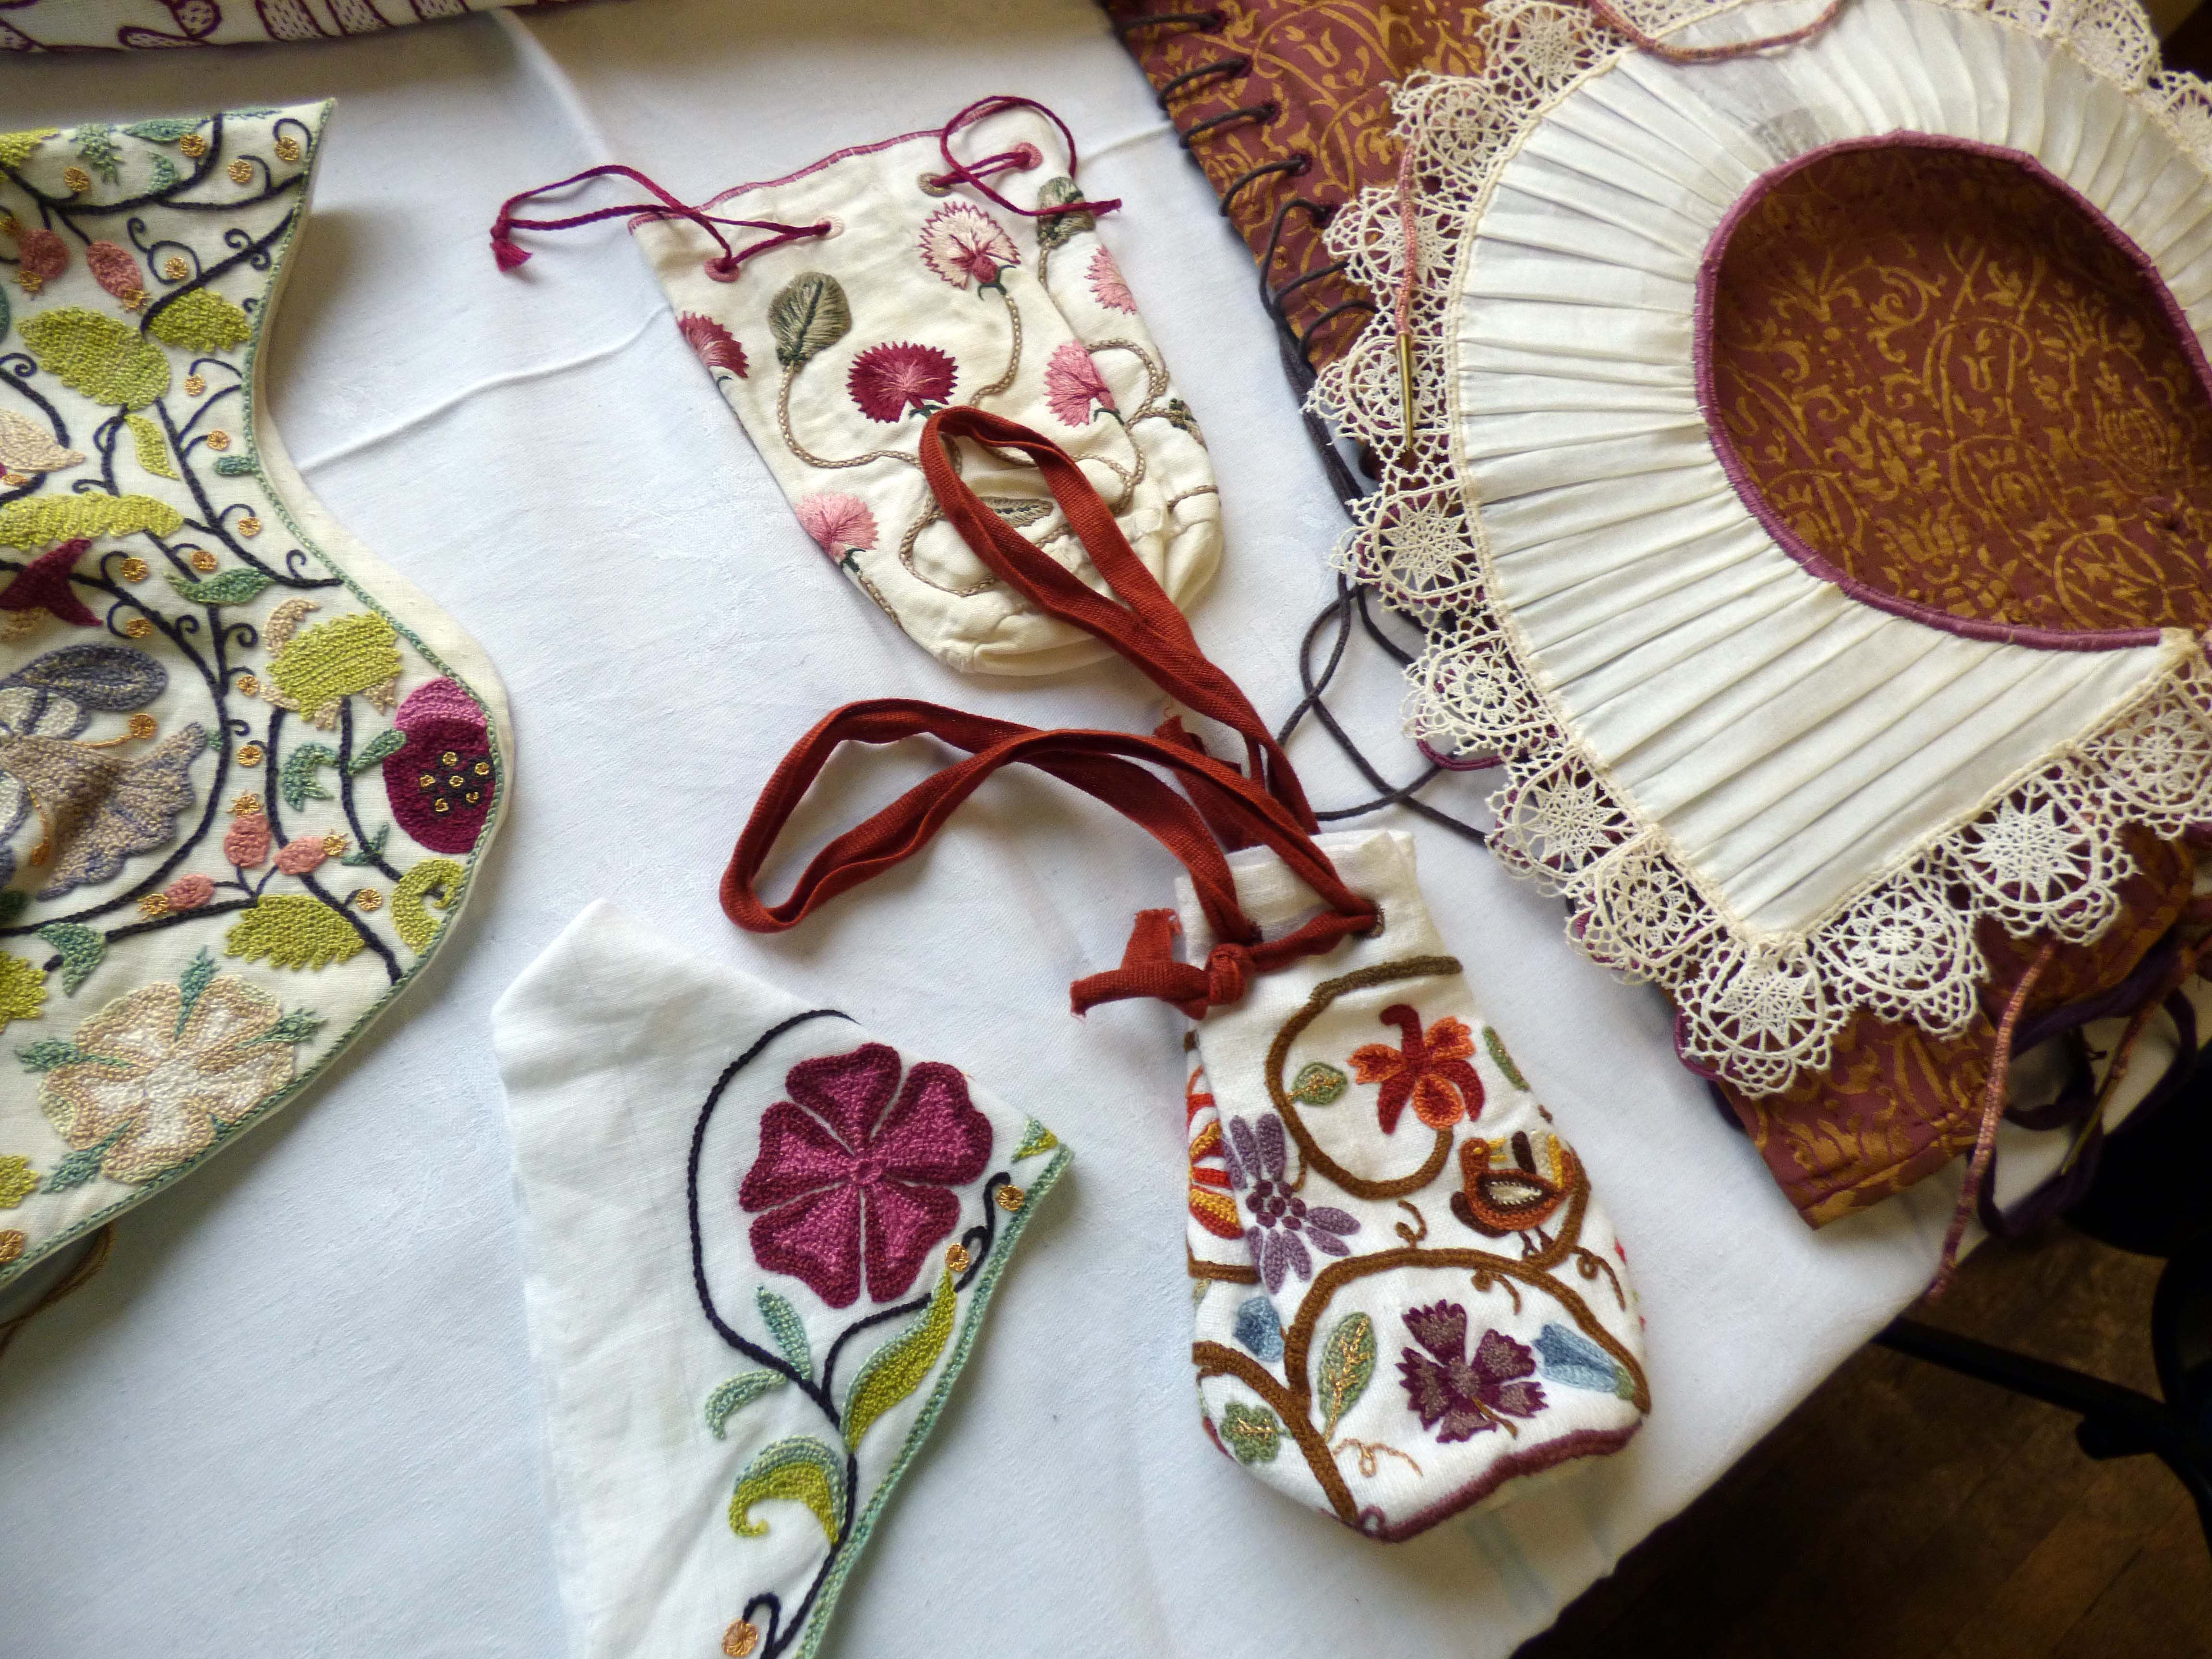 embroidery and lace by Carolyn  Richardson, Embroidery of the Jacobean era, Jan 2019